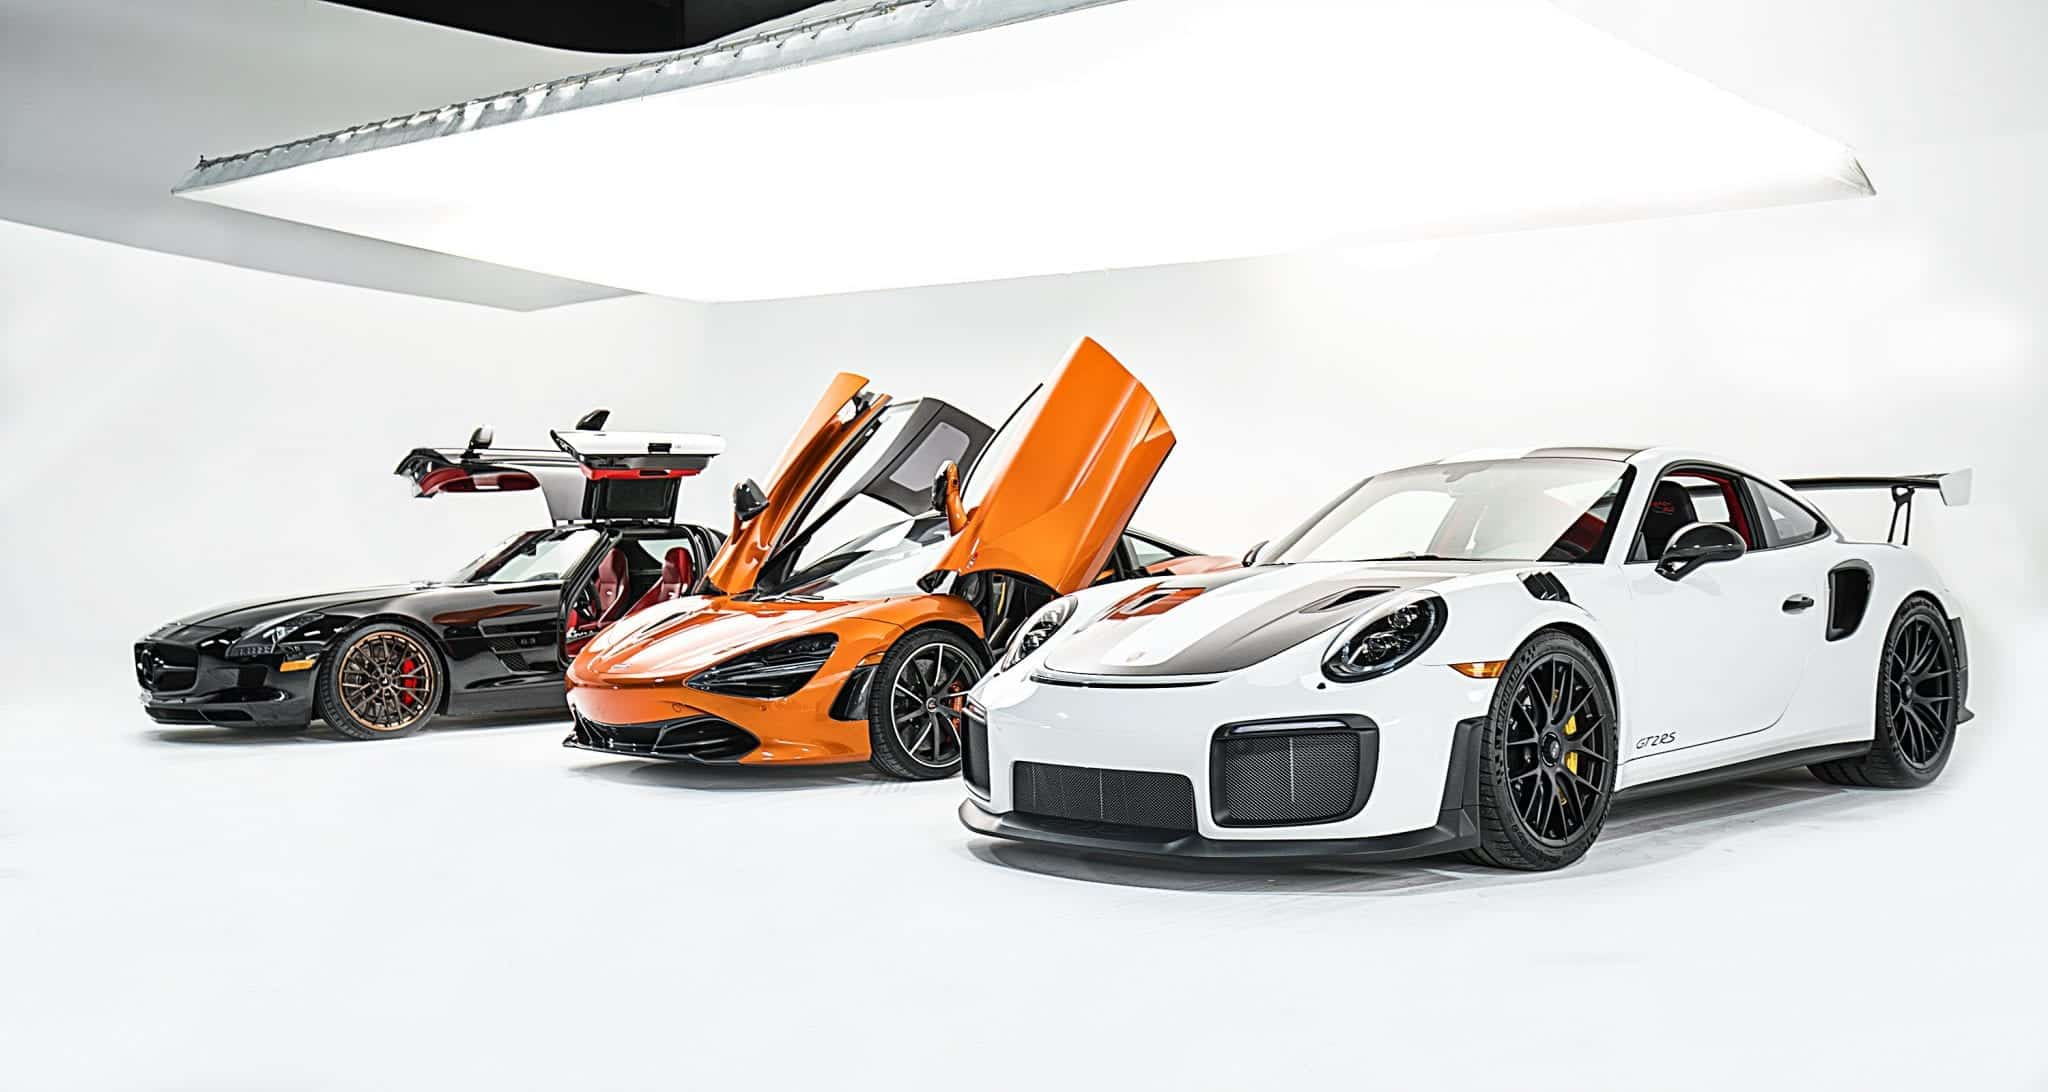 Exotics in Stage 2